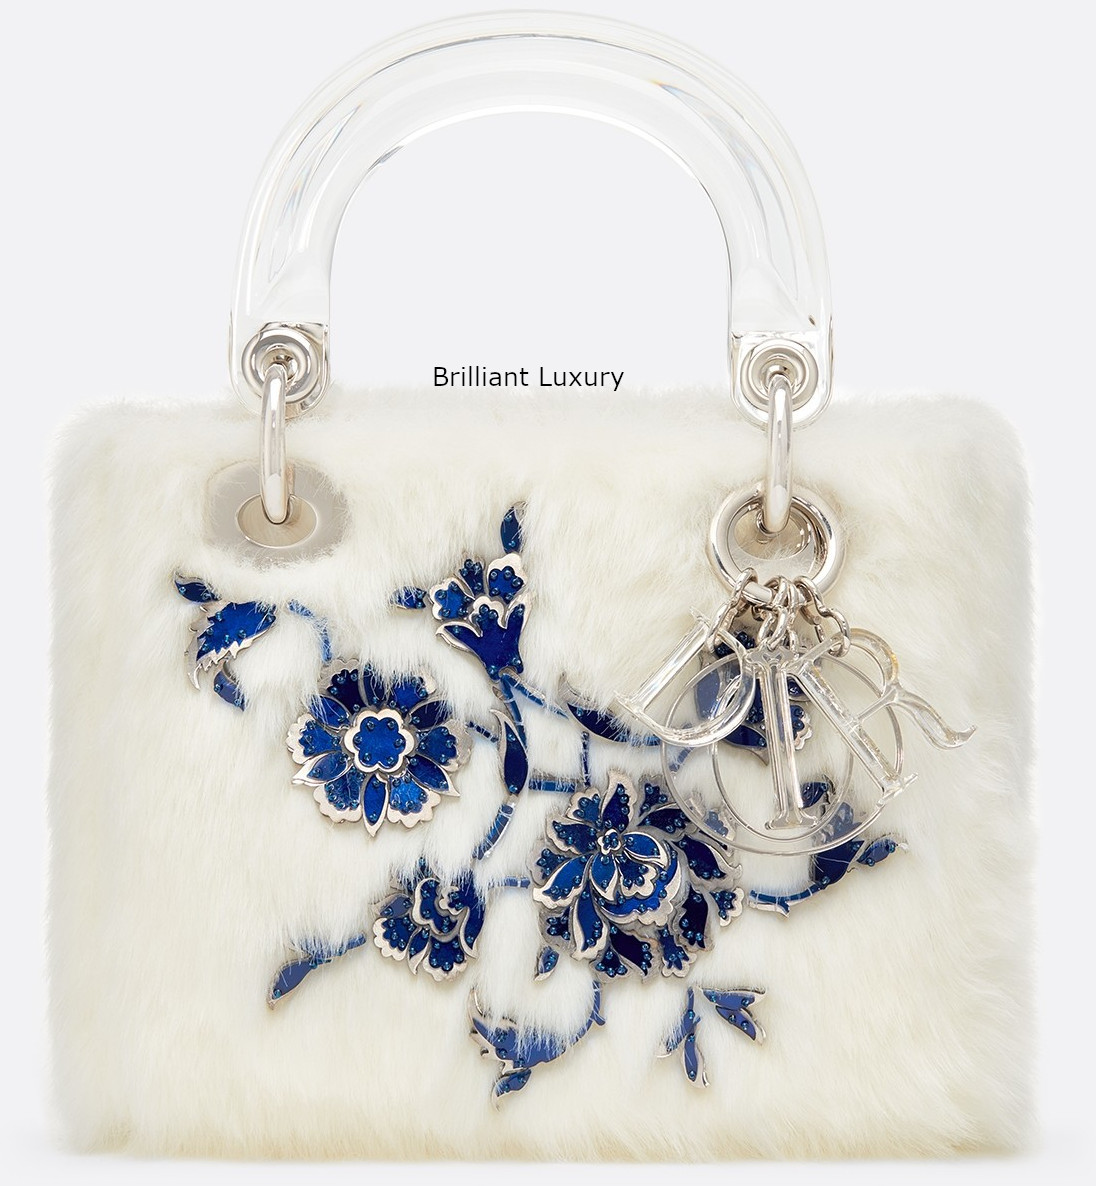 Lady Dior Art Bag in optic white color faux fur embroidered with metallic and blue flowers Designer Burçak Bingöl